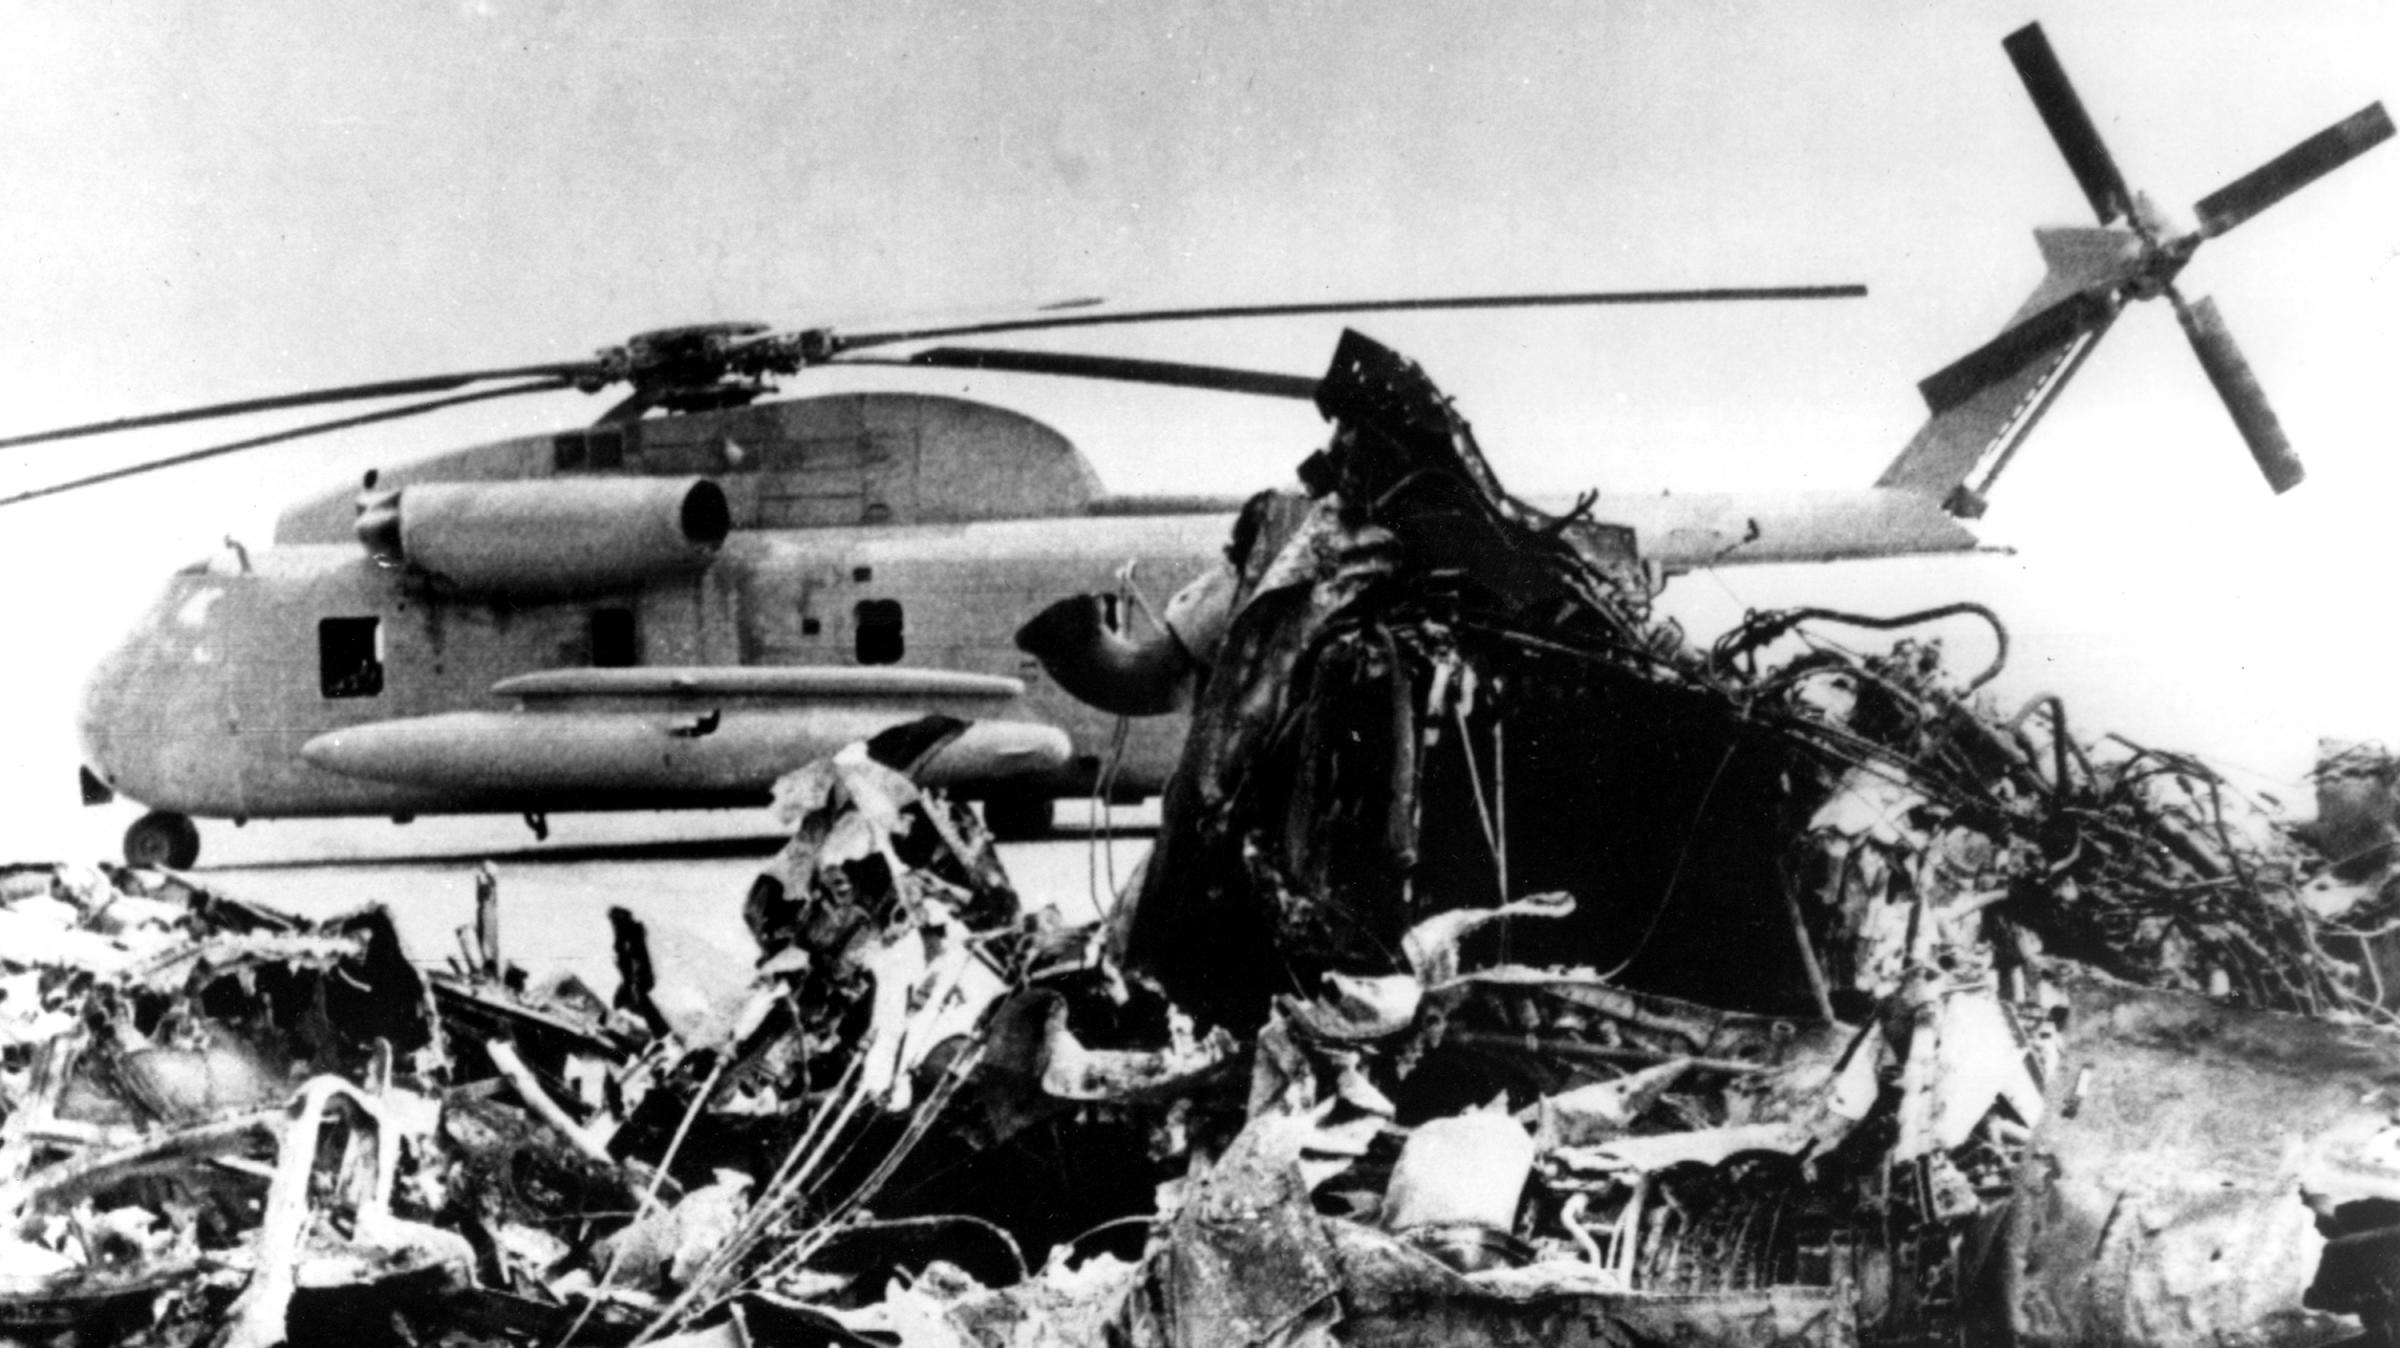 The remains of a burned-out U.S. helicopter and an abandoned chopper in the eastern desert of Iran on April 27, 1980, after the aborted American commando raid to free U.S. Embassy hostages | AP.